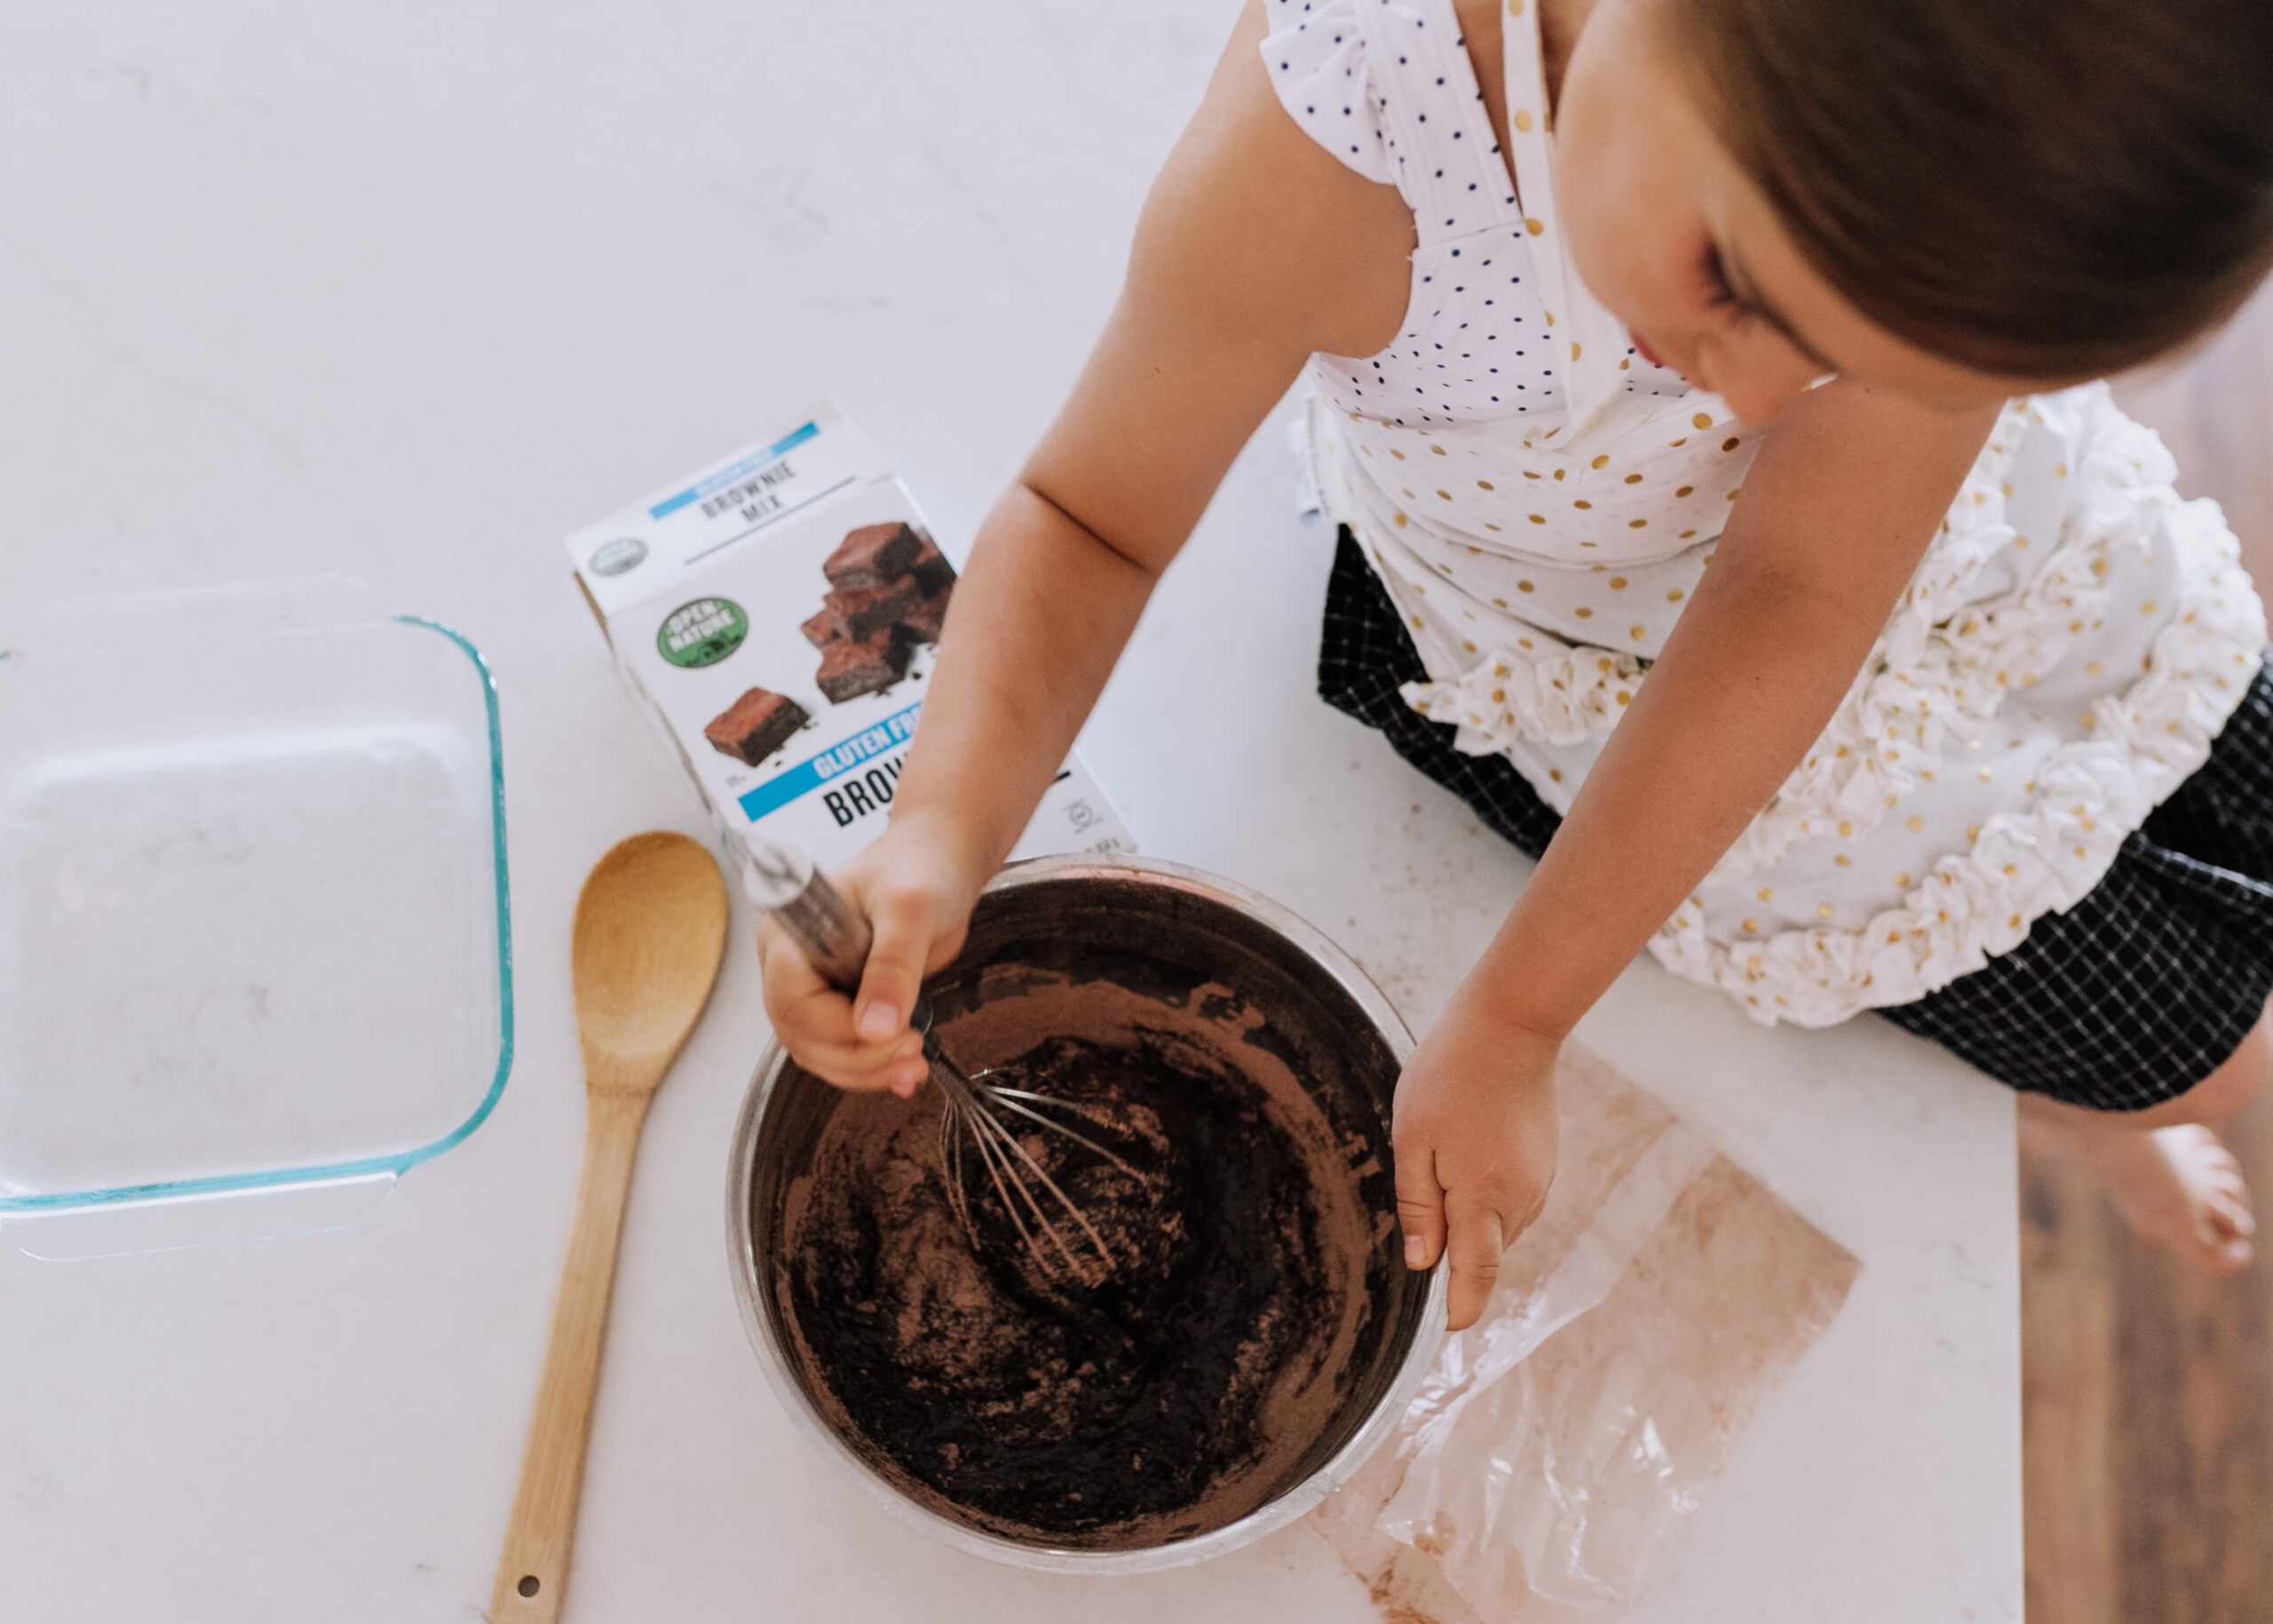 easy peasy brownie mix that's also gluten free! #opennature #safeway #glutenfree #brownies